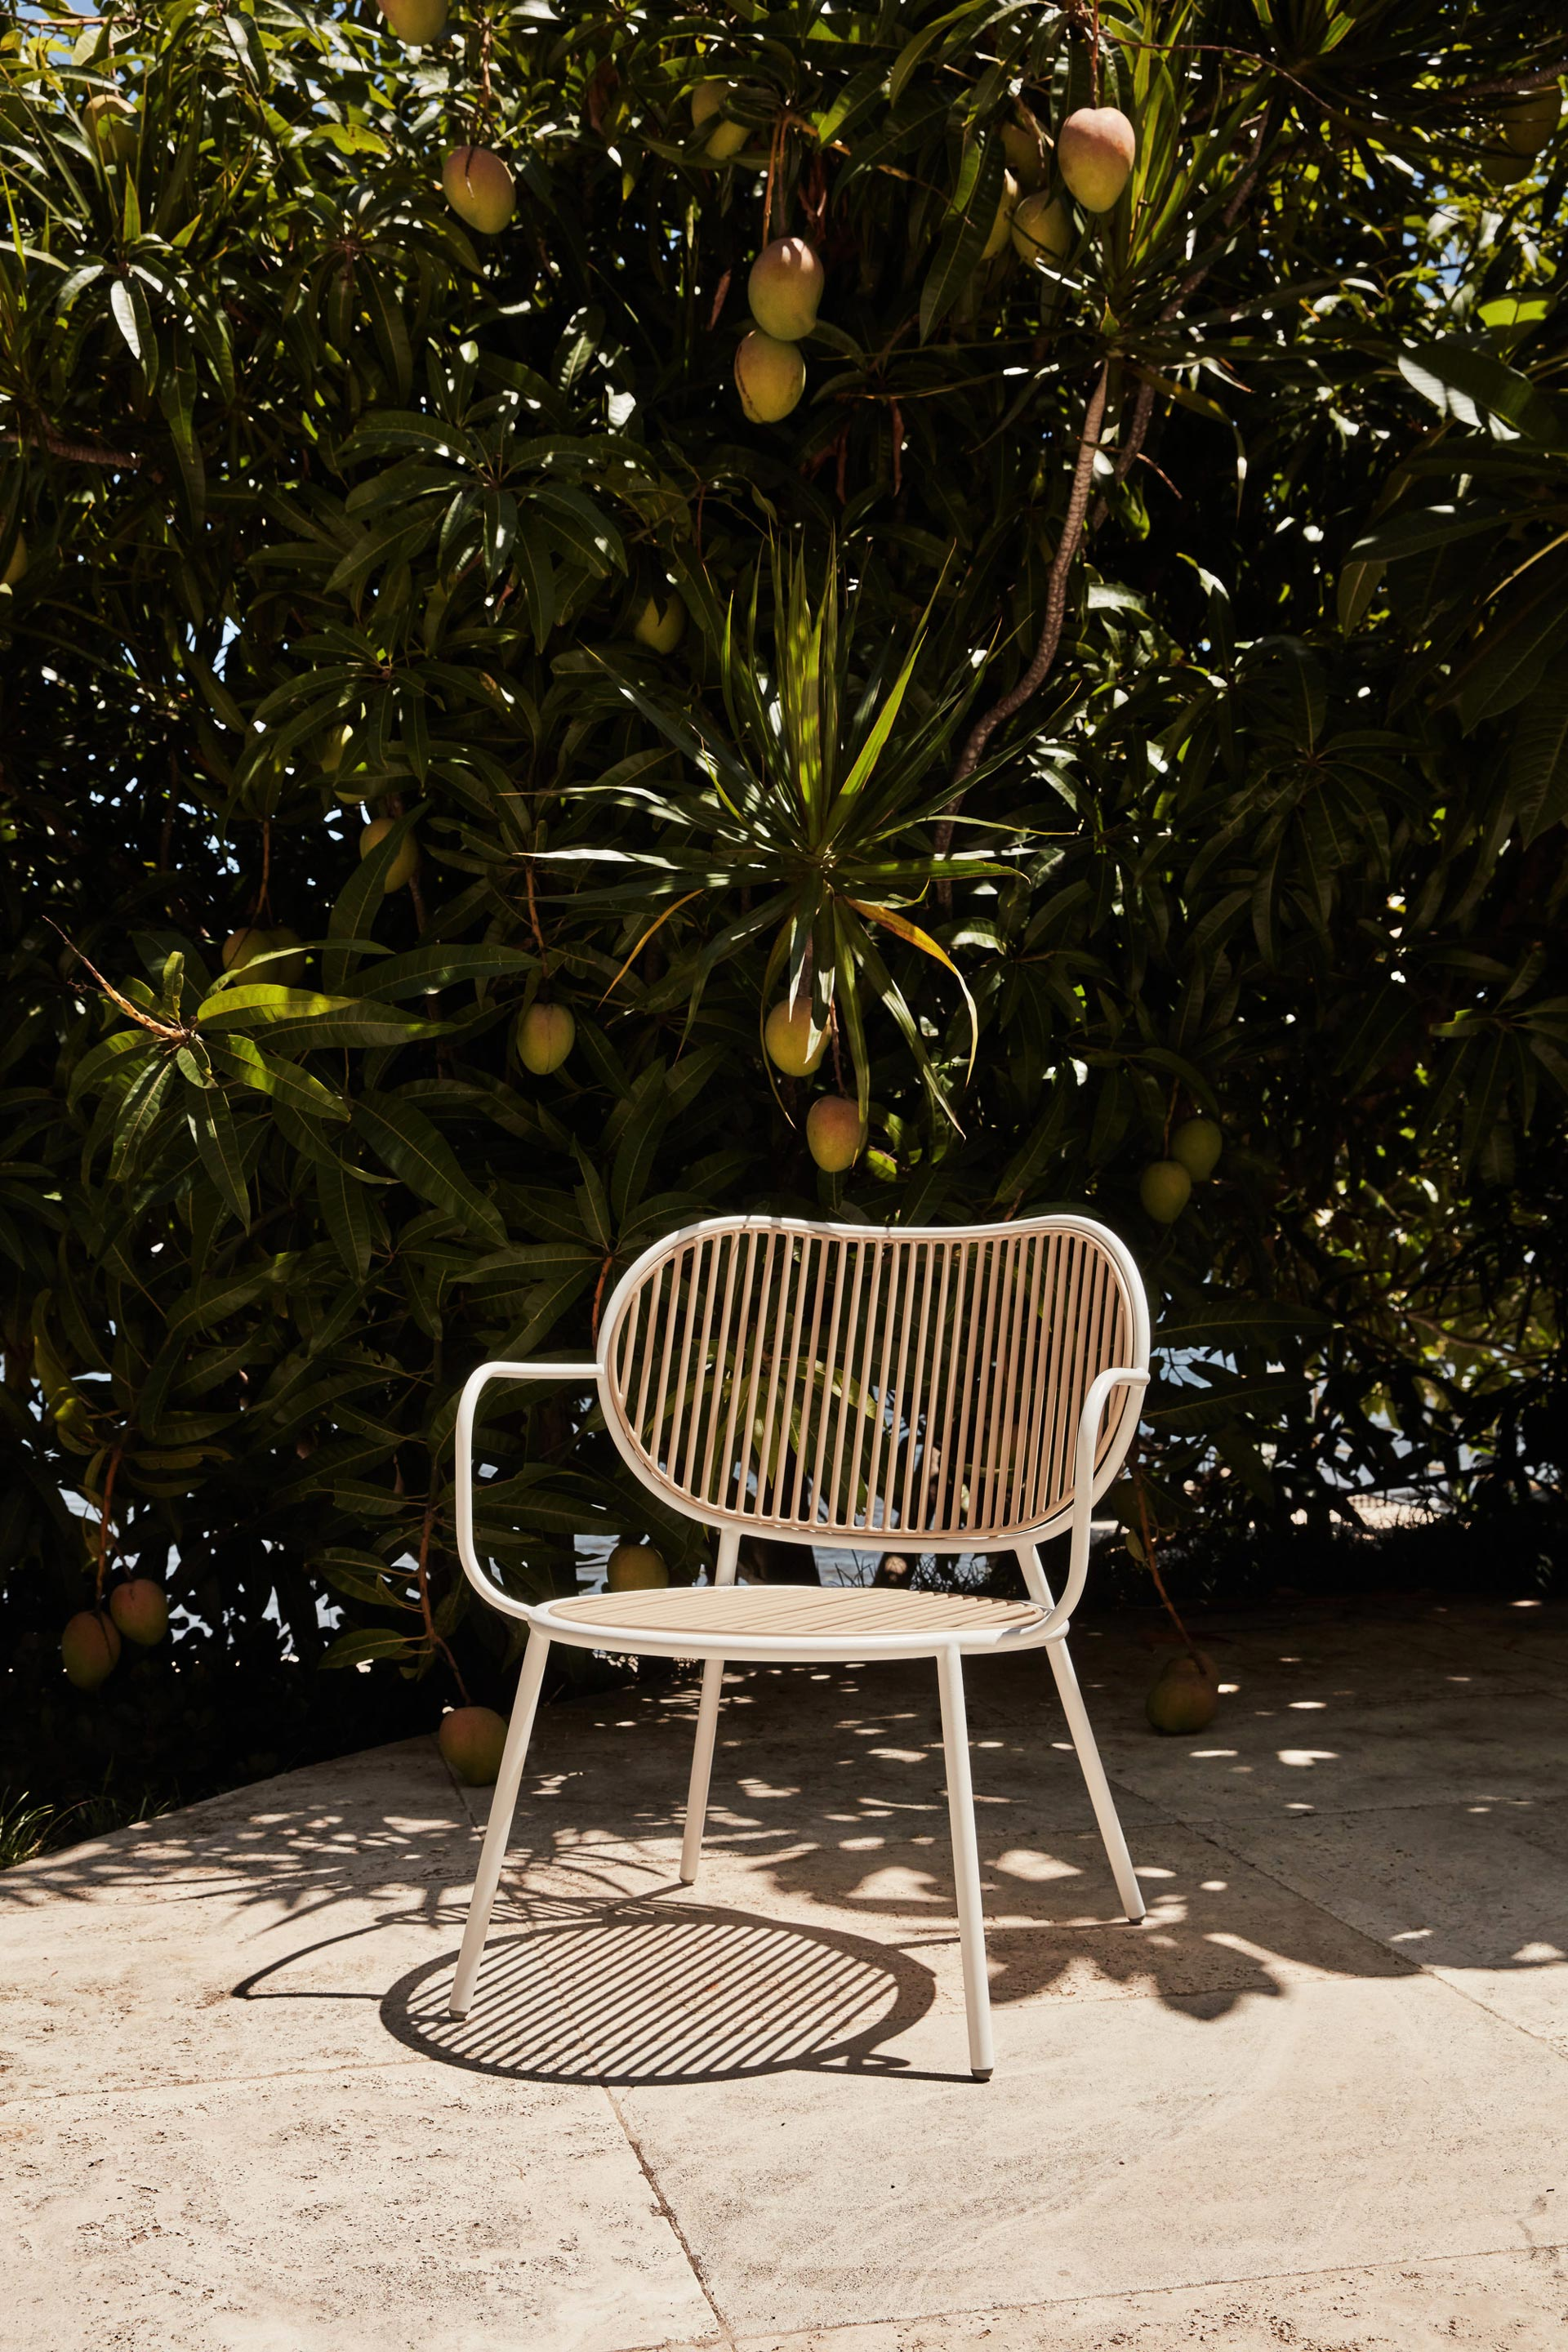 Piper Lounge Chair | Stainless Steel Indoor Outdoor Furniture | Sarah Gibson & Nicholas Karlovasitis | DesignByThem